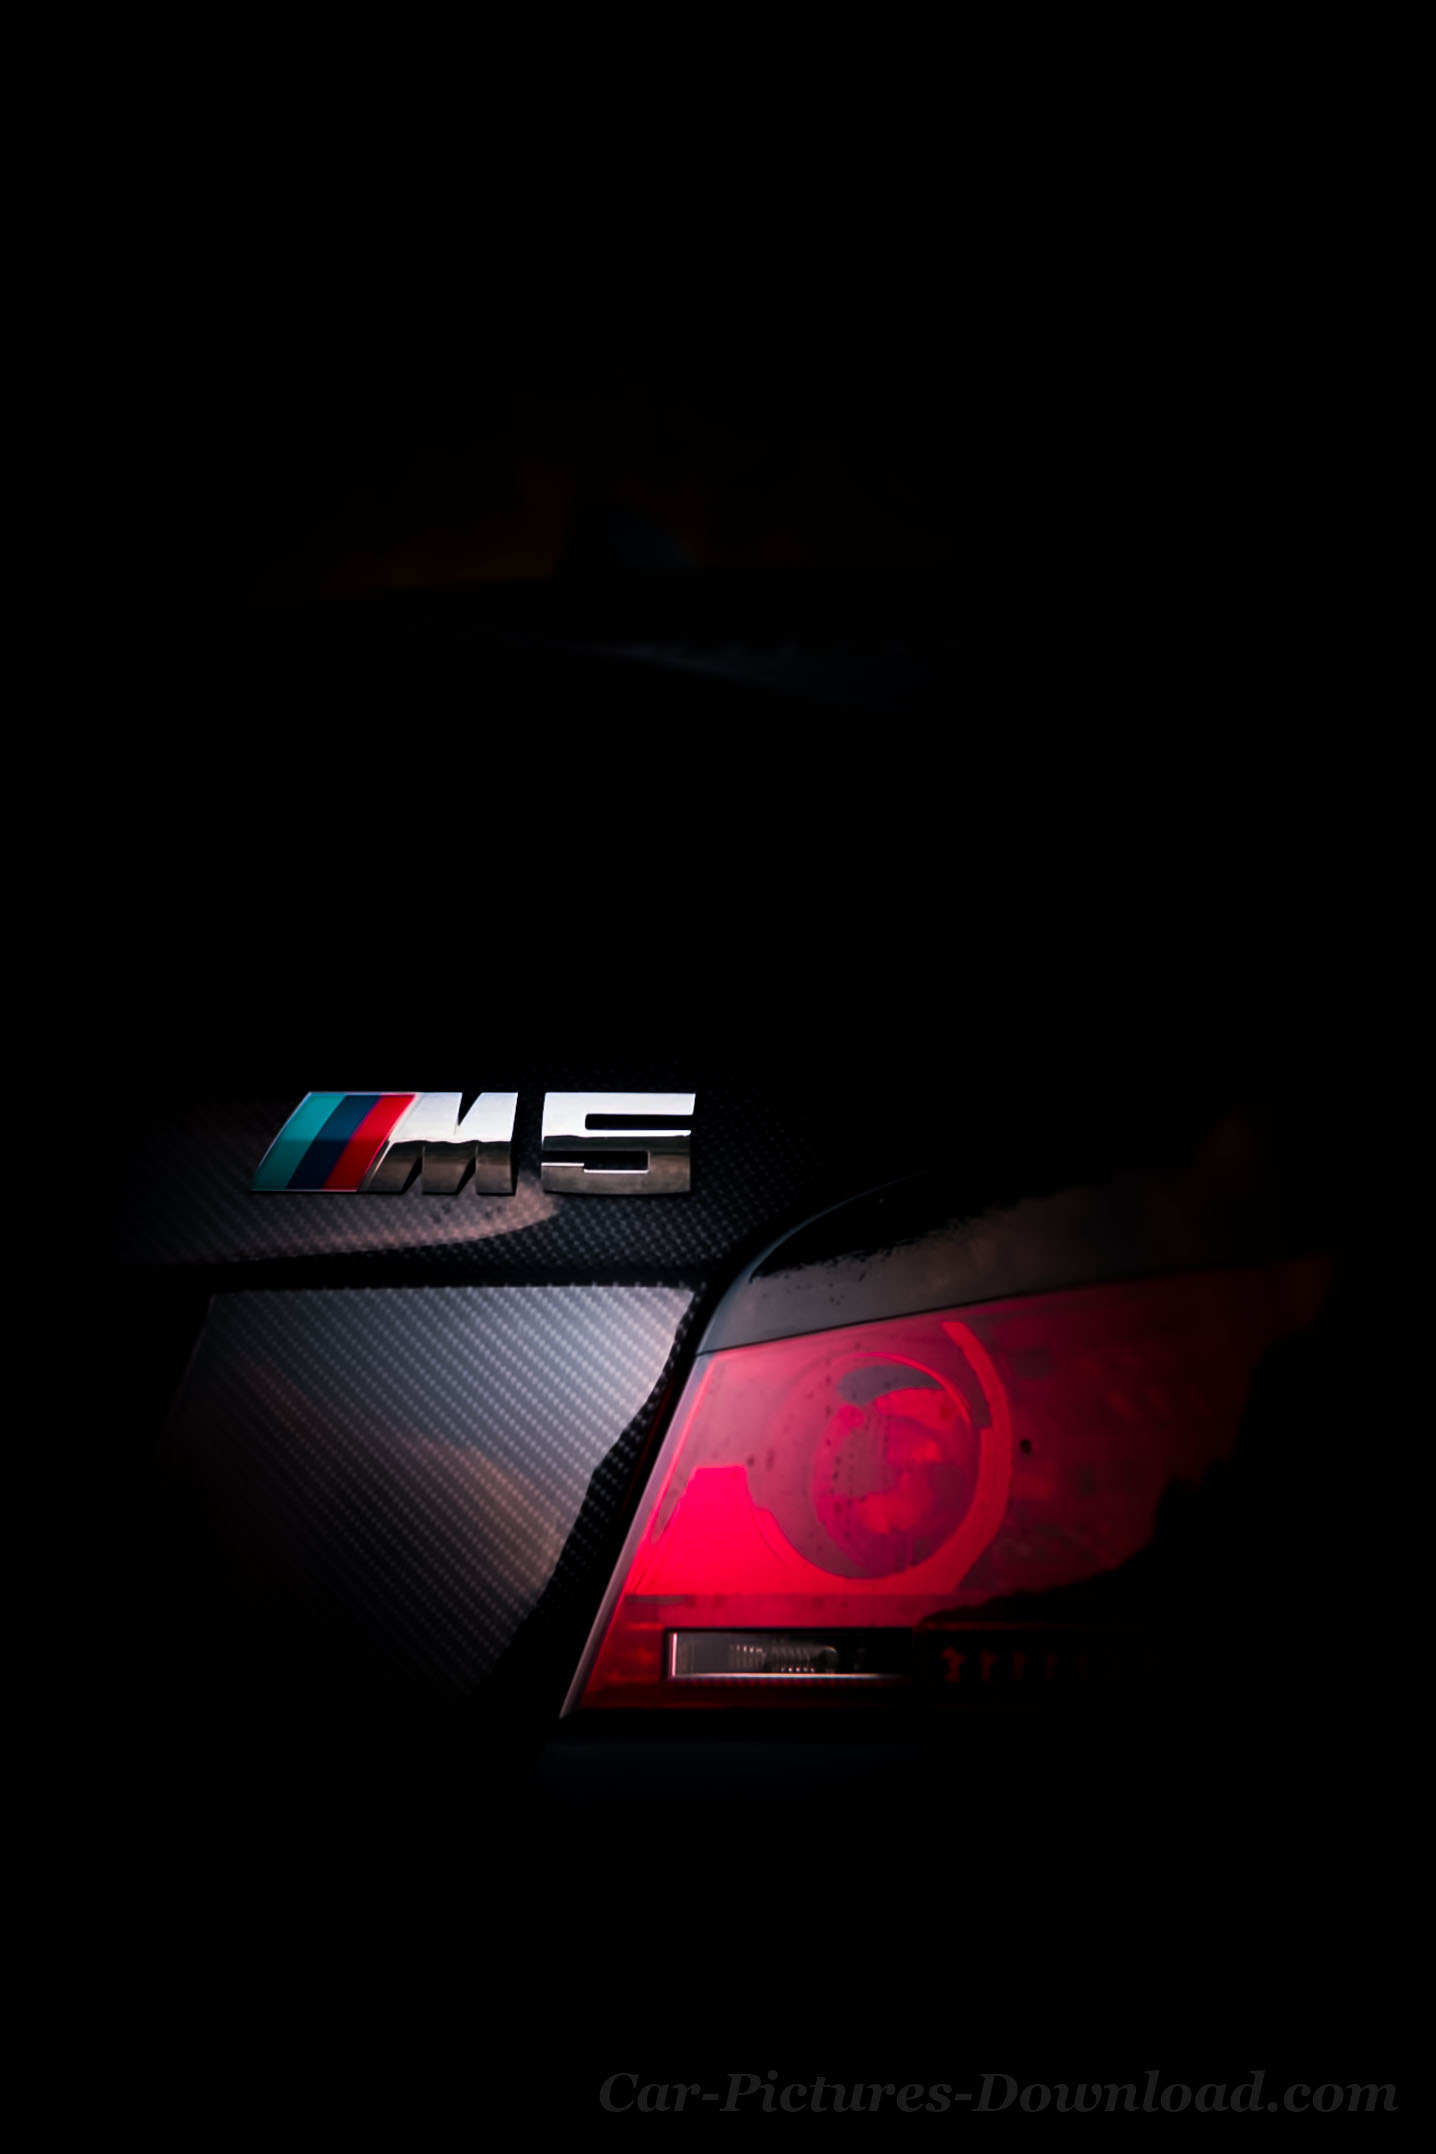 Bmw M5 Logo Black Car Wallpaper Android Black Bmw M5 Wallpaper Hd 1436x2154 Download Hd Wallpaper Wallpapertip